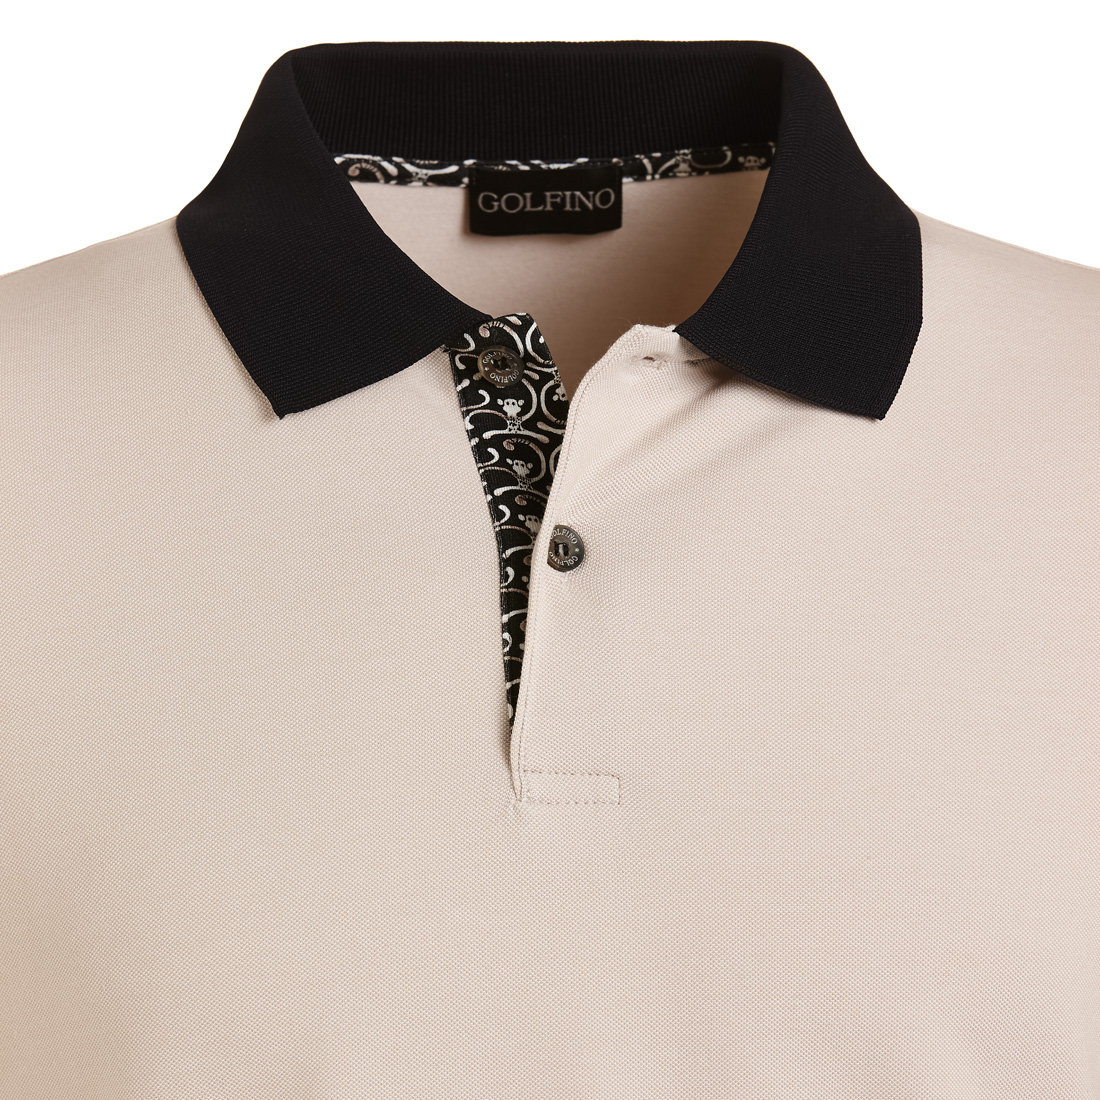 Herren Golfpolo in Regular Fit mit Sun Protection